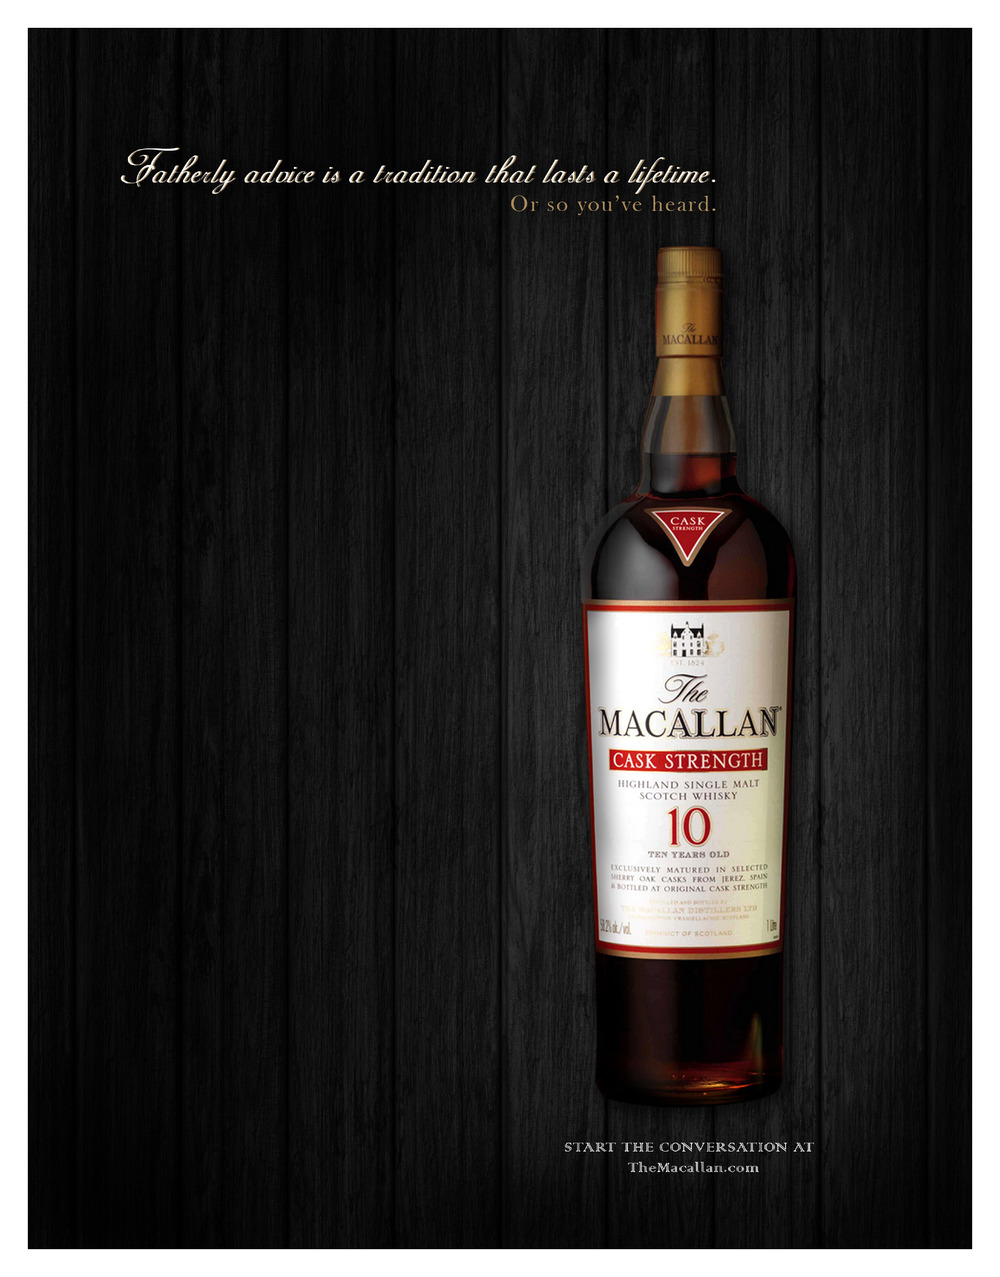 Macallan 2 - Tradition_o.jpg